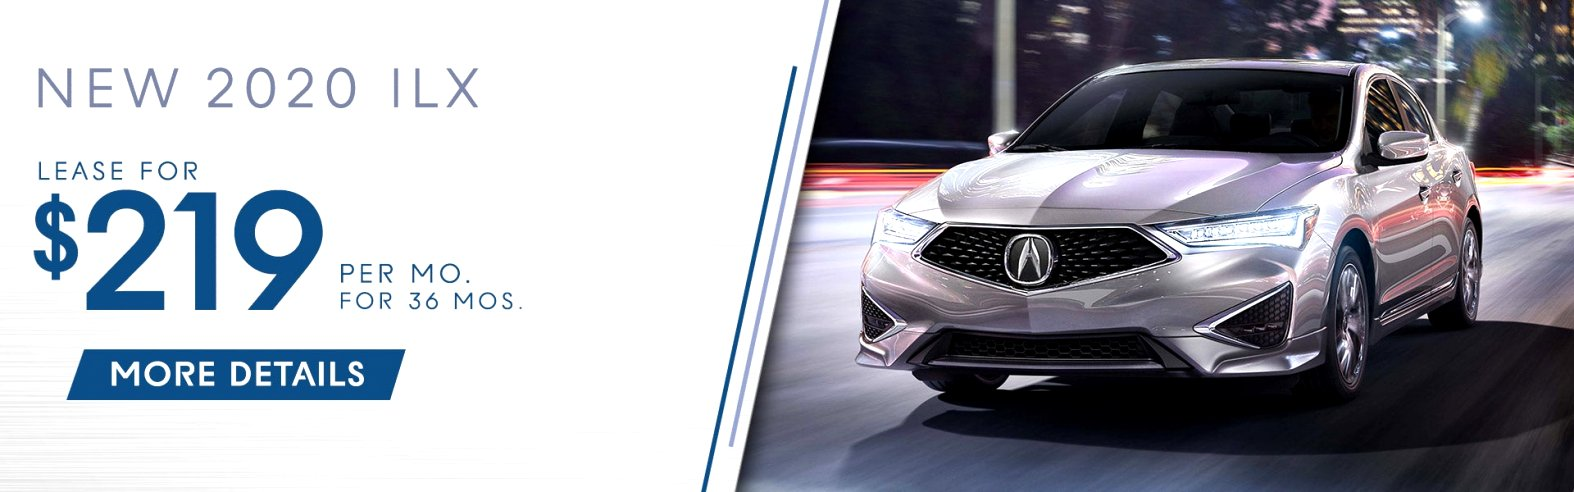 acura black friday deals 2020 Performance